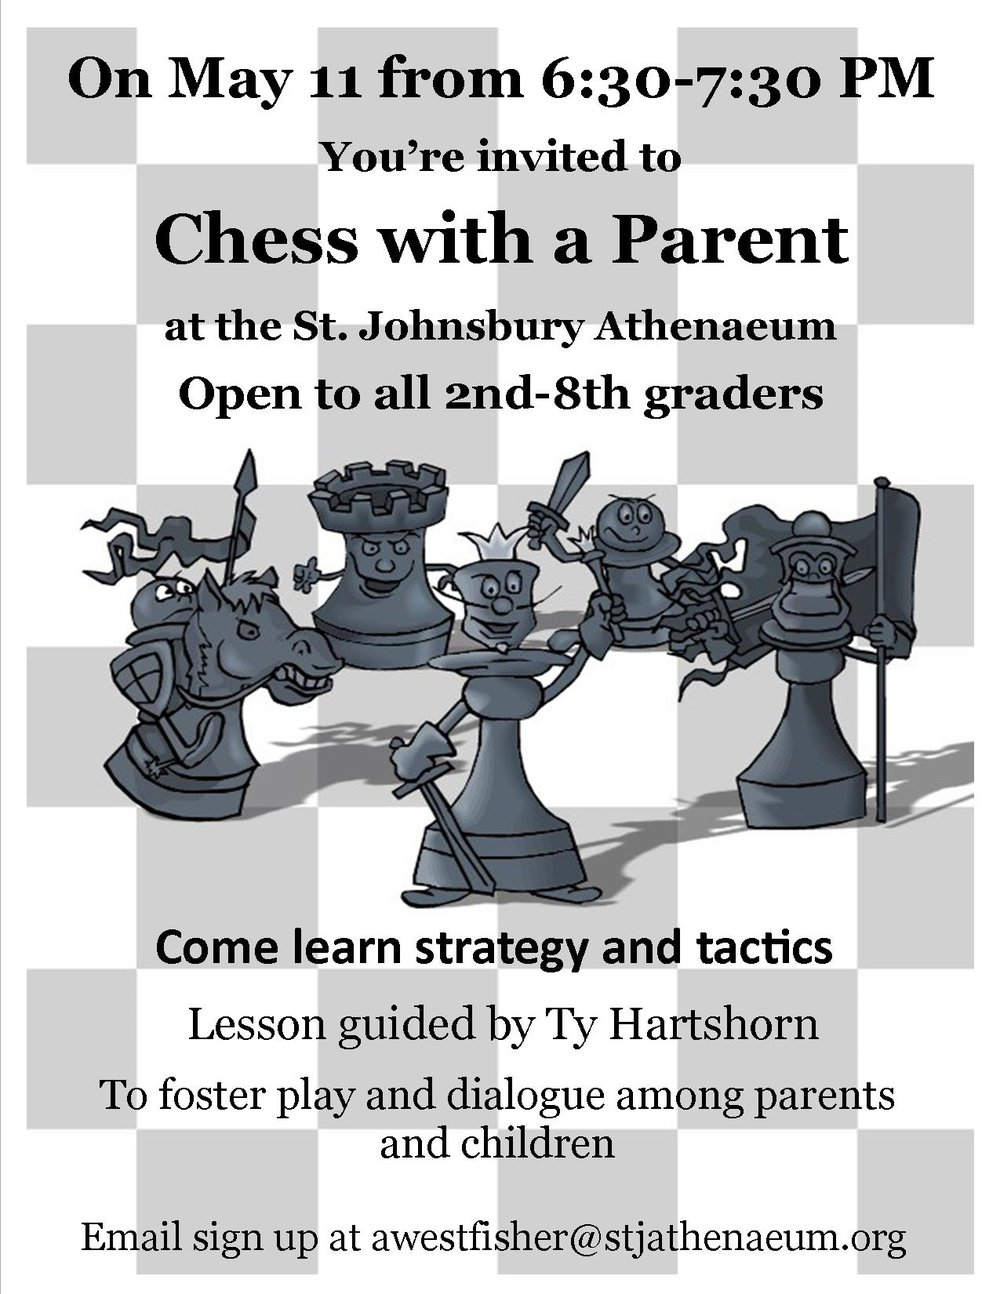 chess with a parent normal contrast.jpg